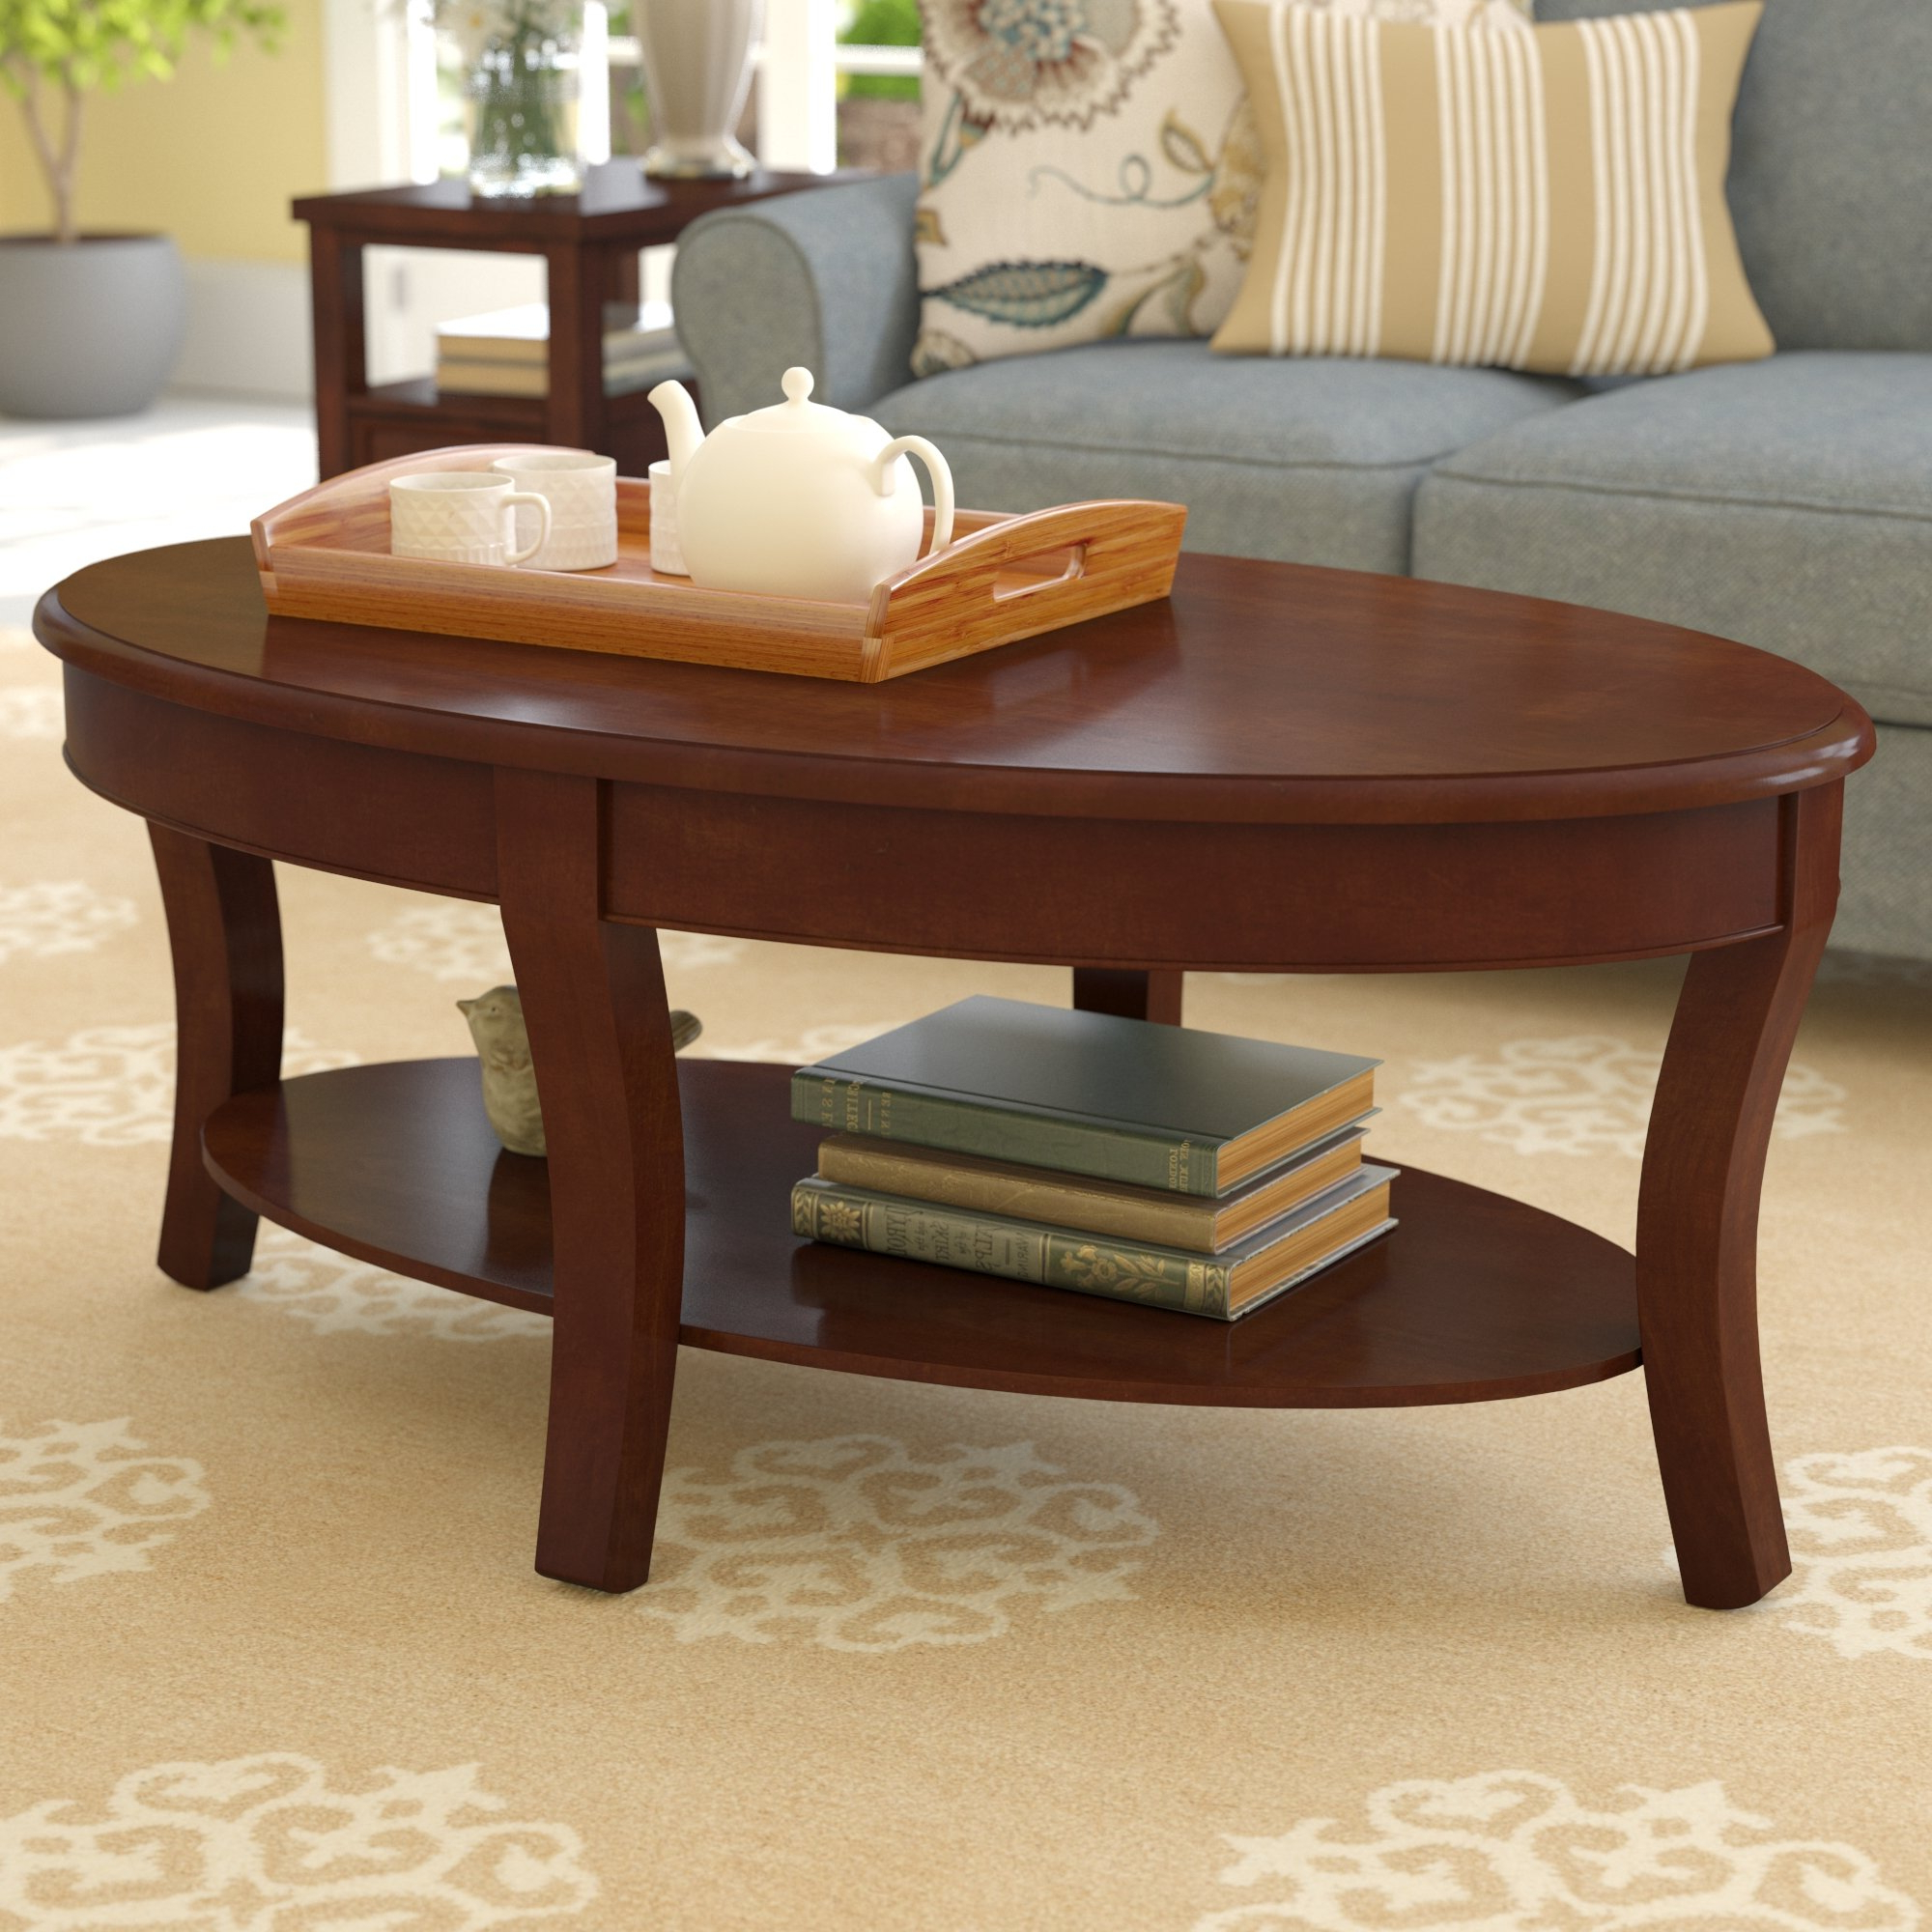 Wayfair For Stack Hi Gloss Wood Coffee Tables (View 18 of 20)